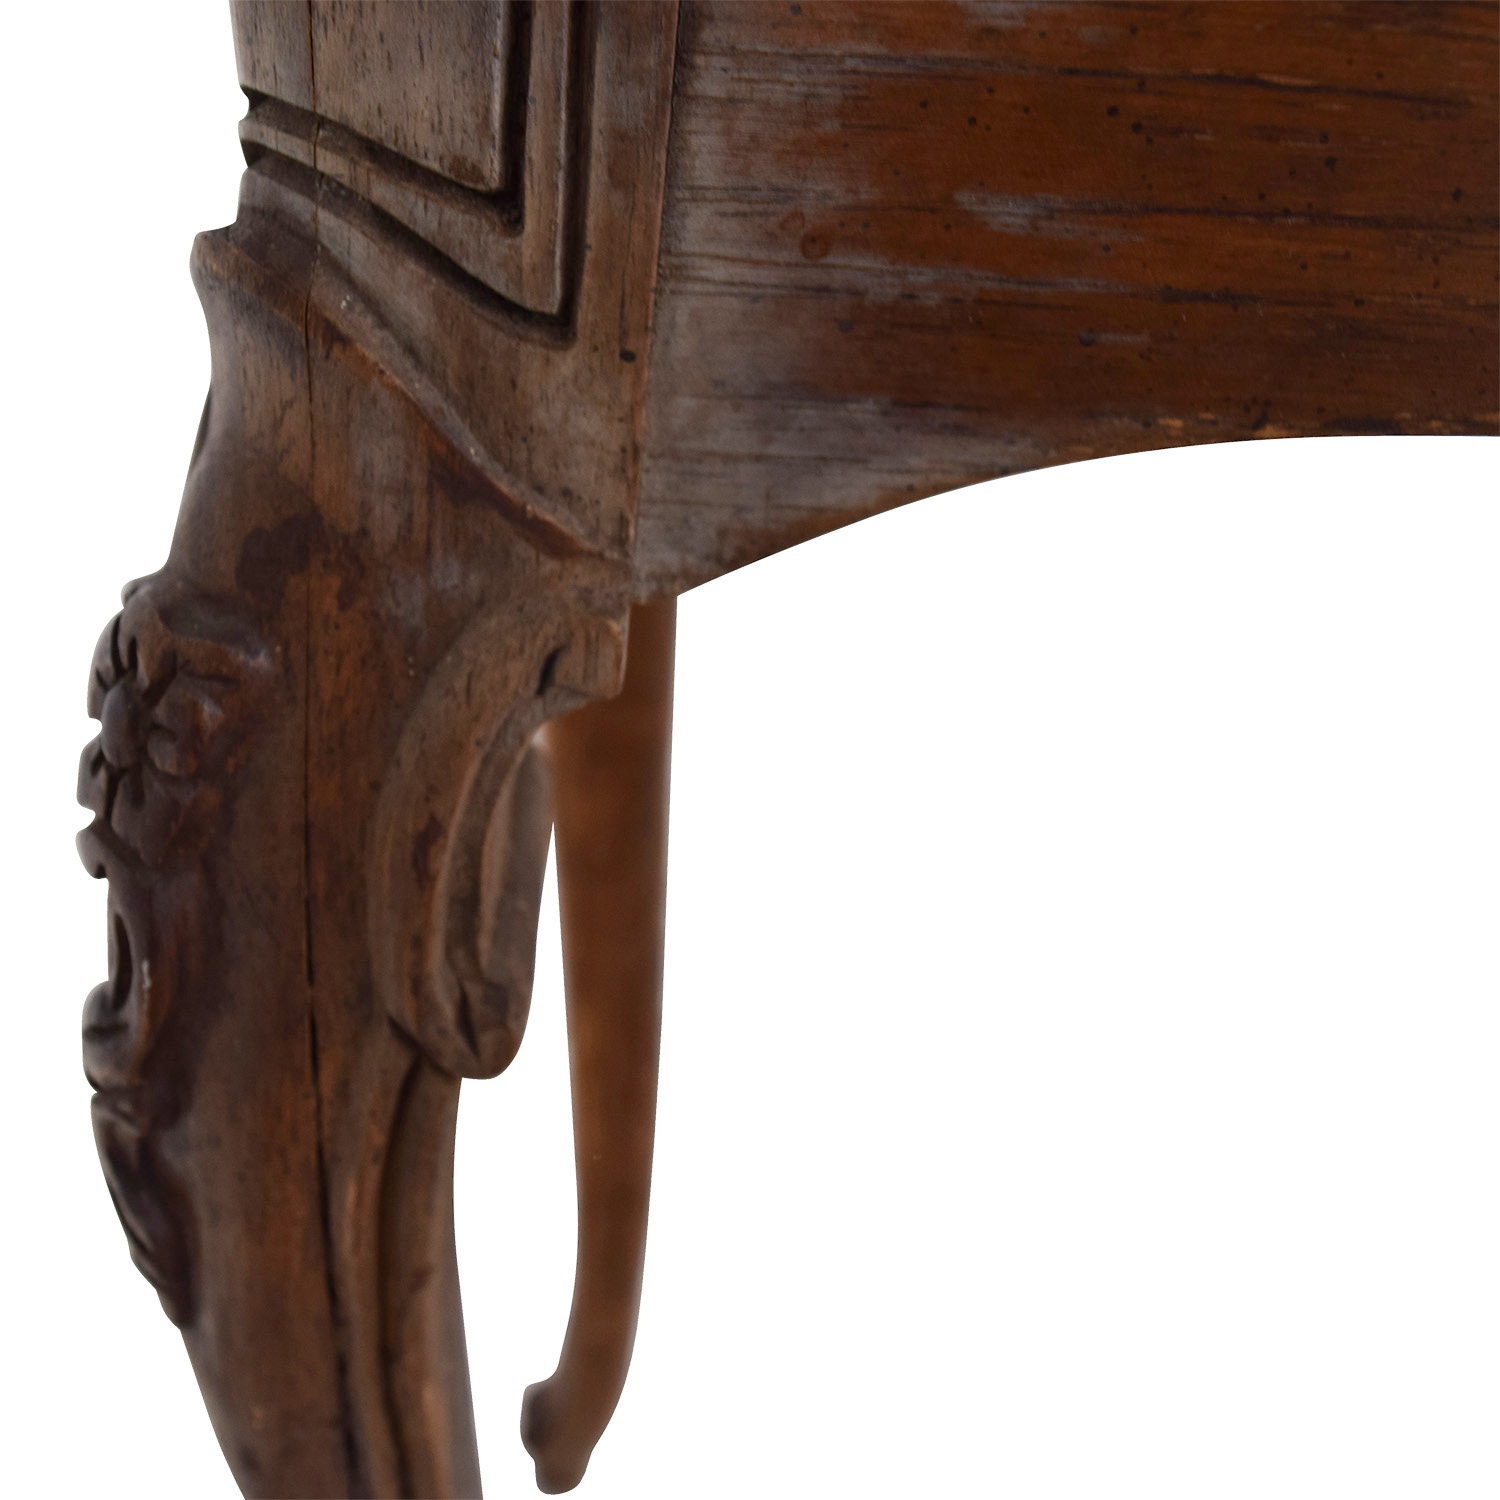 ... Antique Wood Couch Side Table for sale ... - 83% OFF - Antique Wood Couch Side Table / Tables